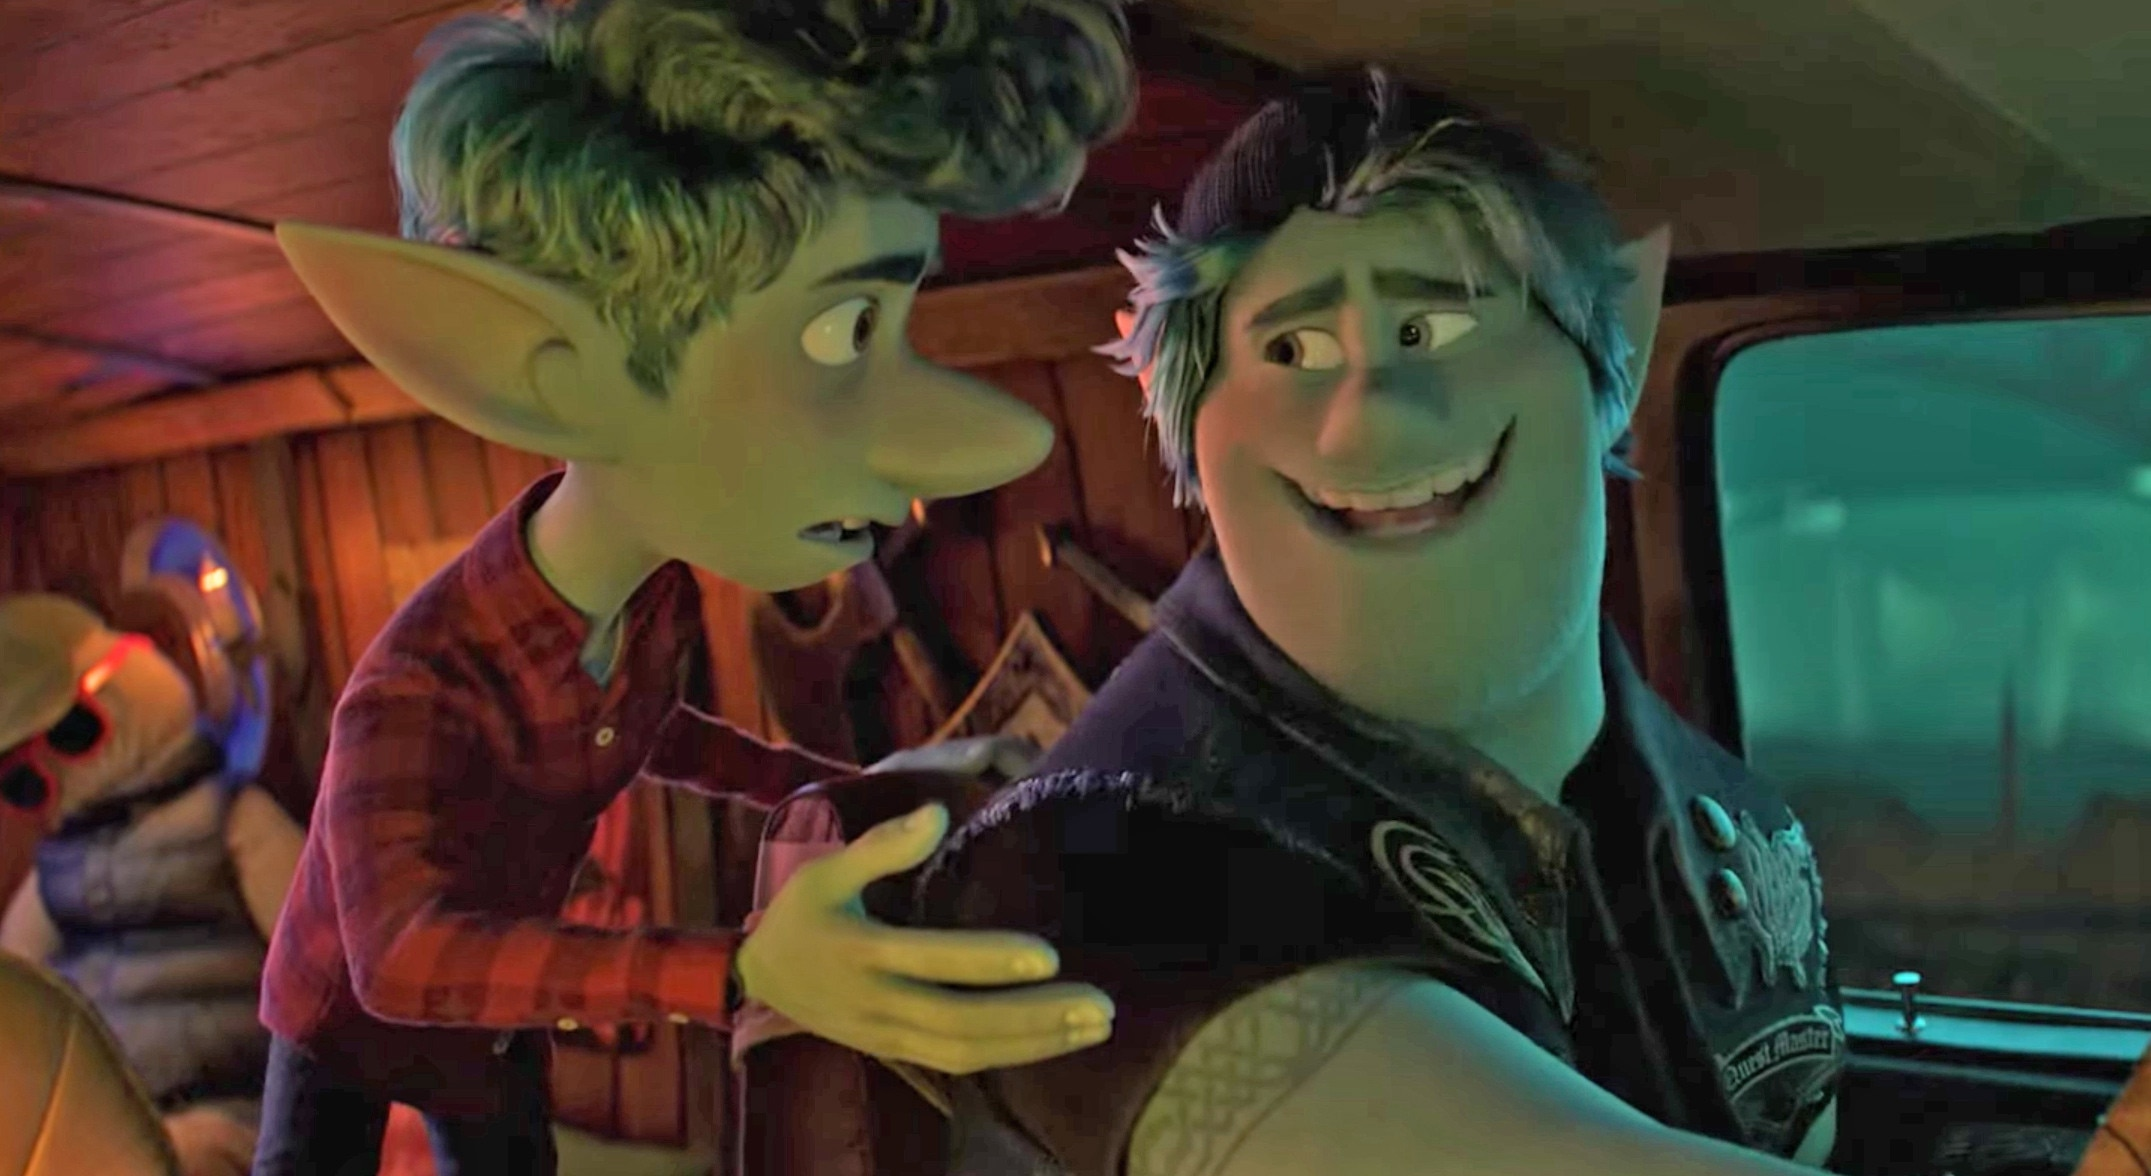 Watch The Brand New Trailer For Disney & Pixar's 'Onward'